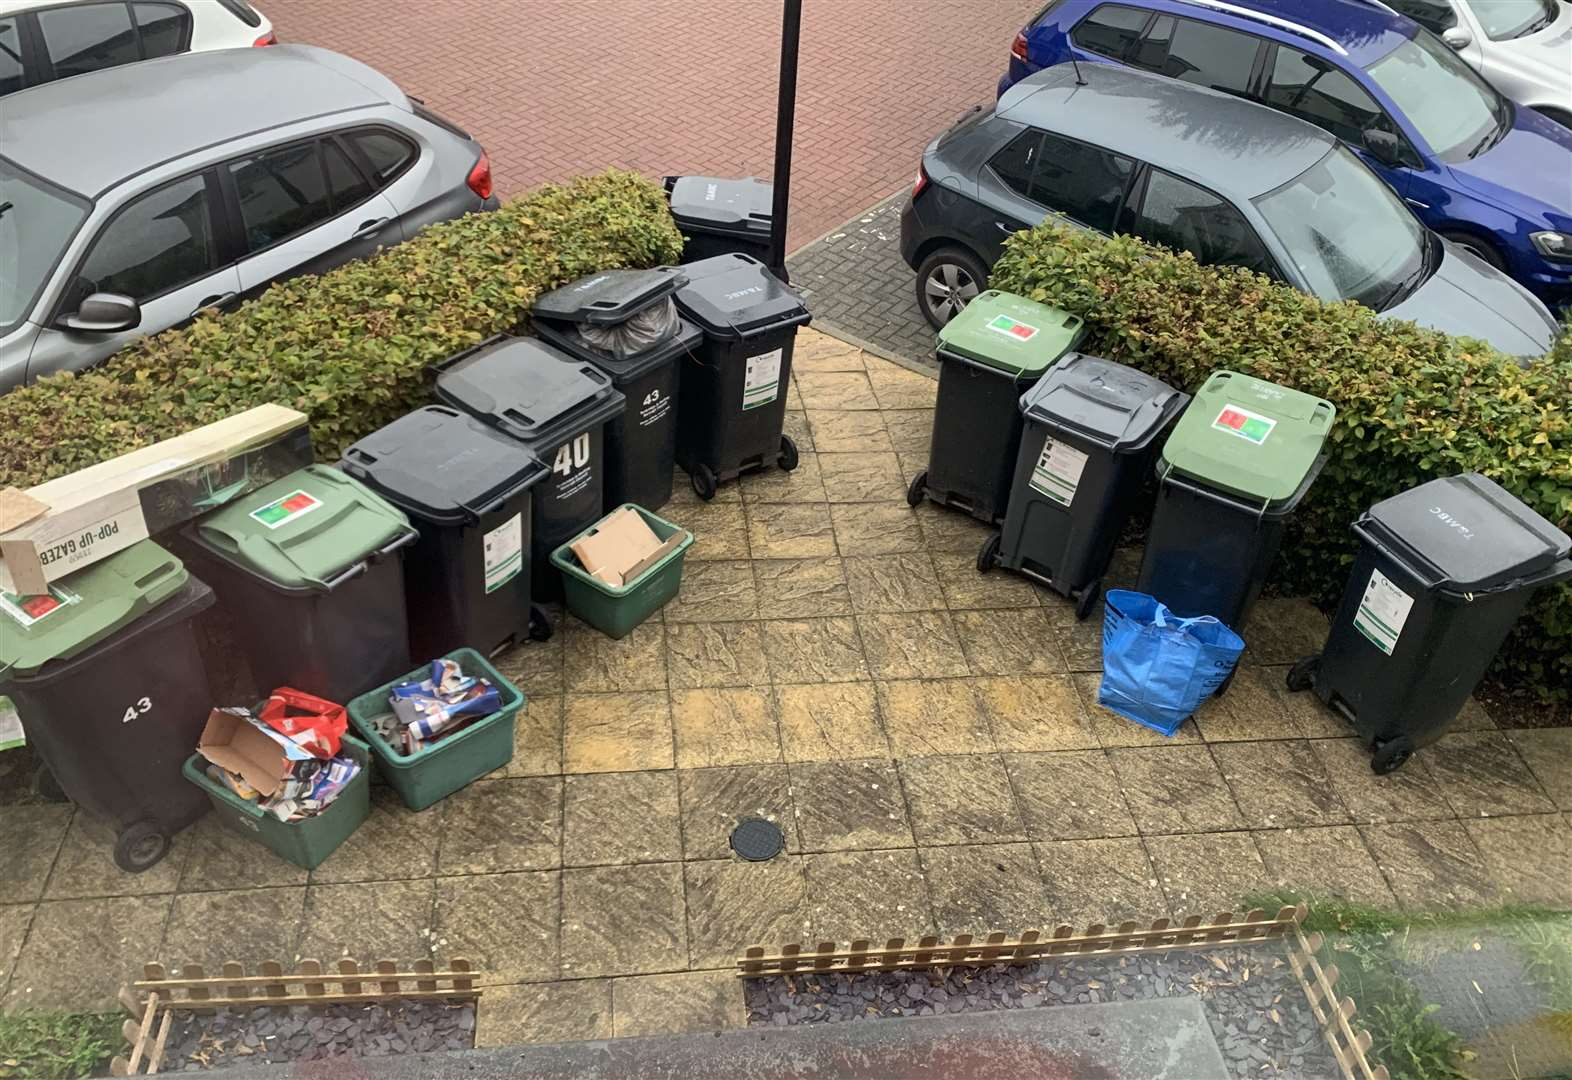 Council apology over new bin collection schedule